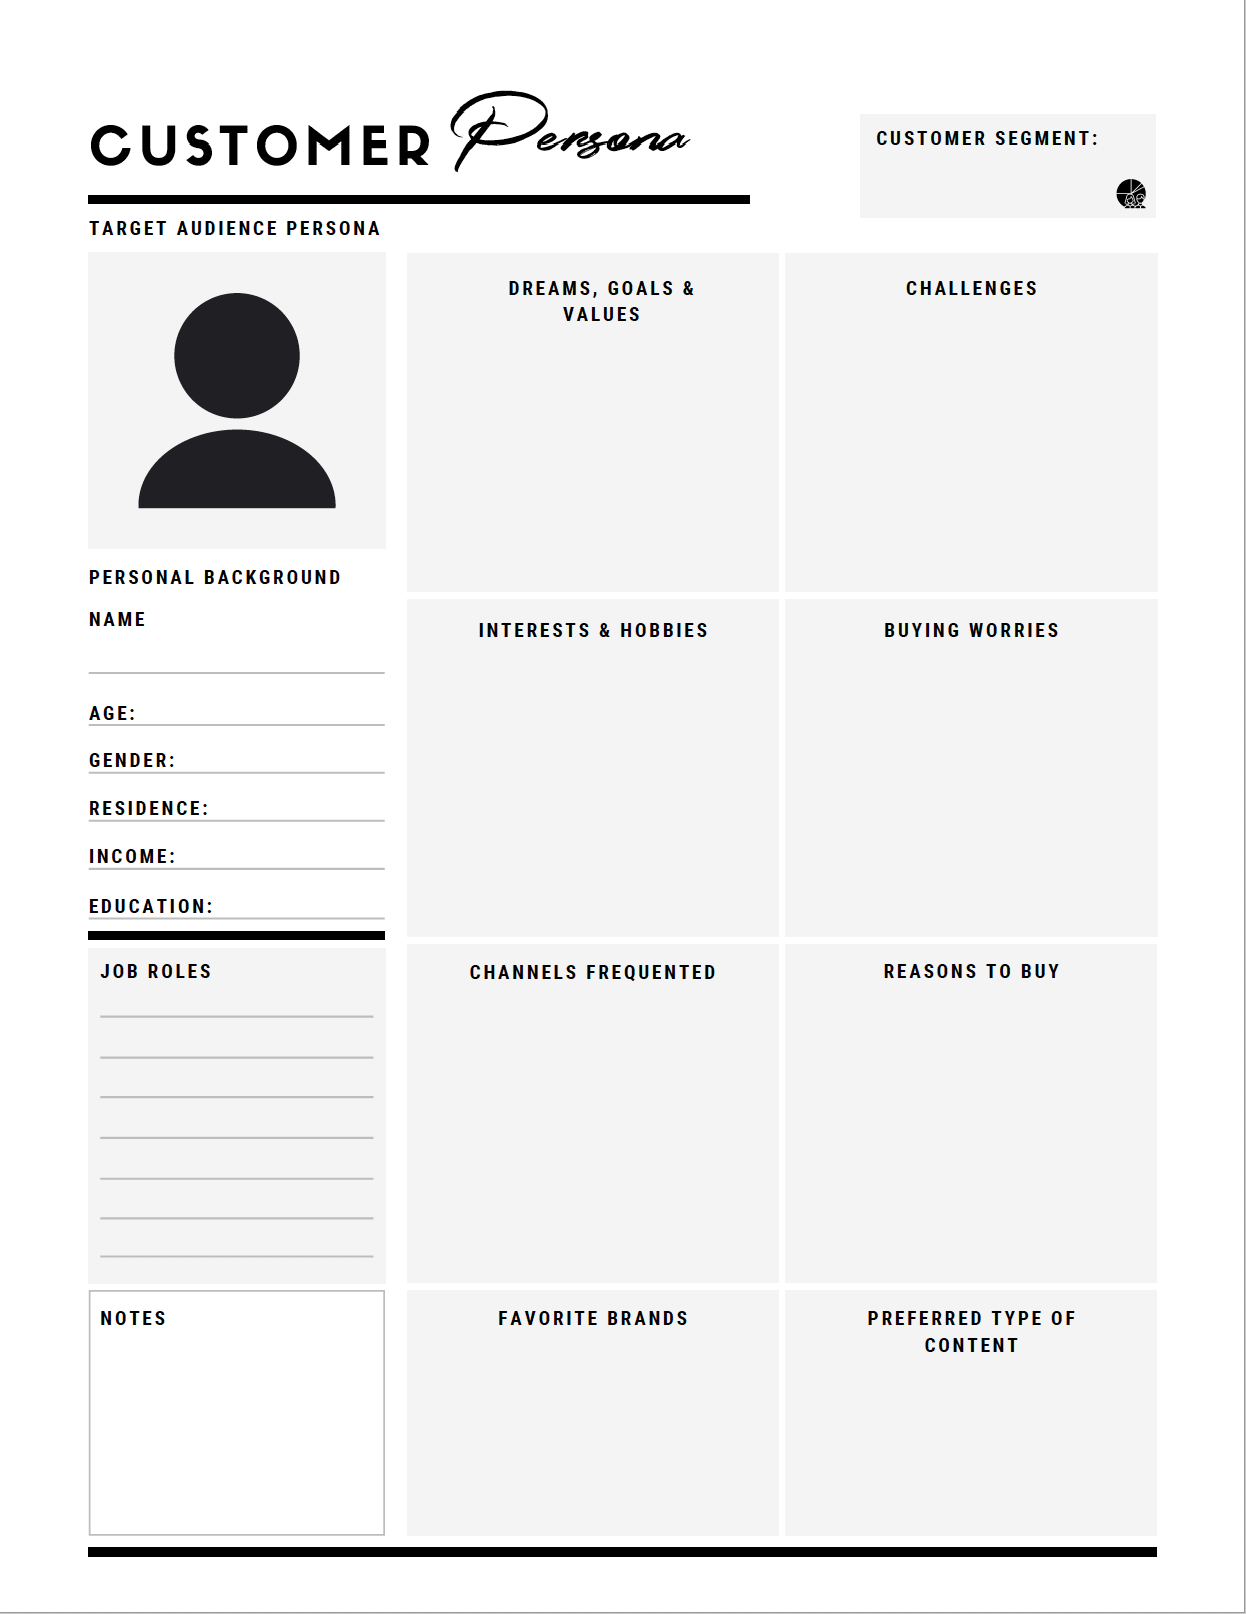 Customer Persona Template for Small Business Owners